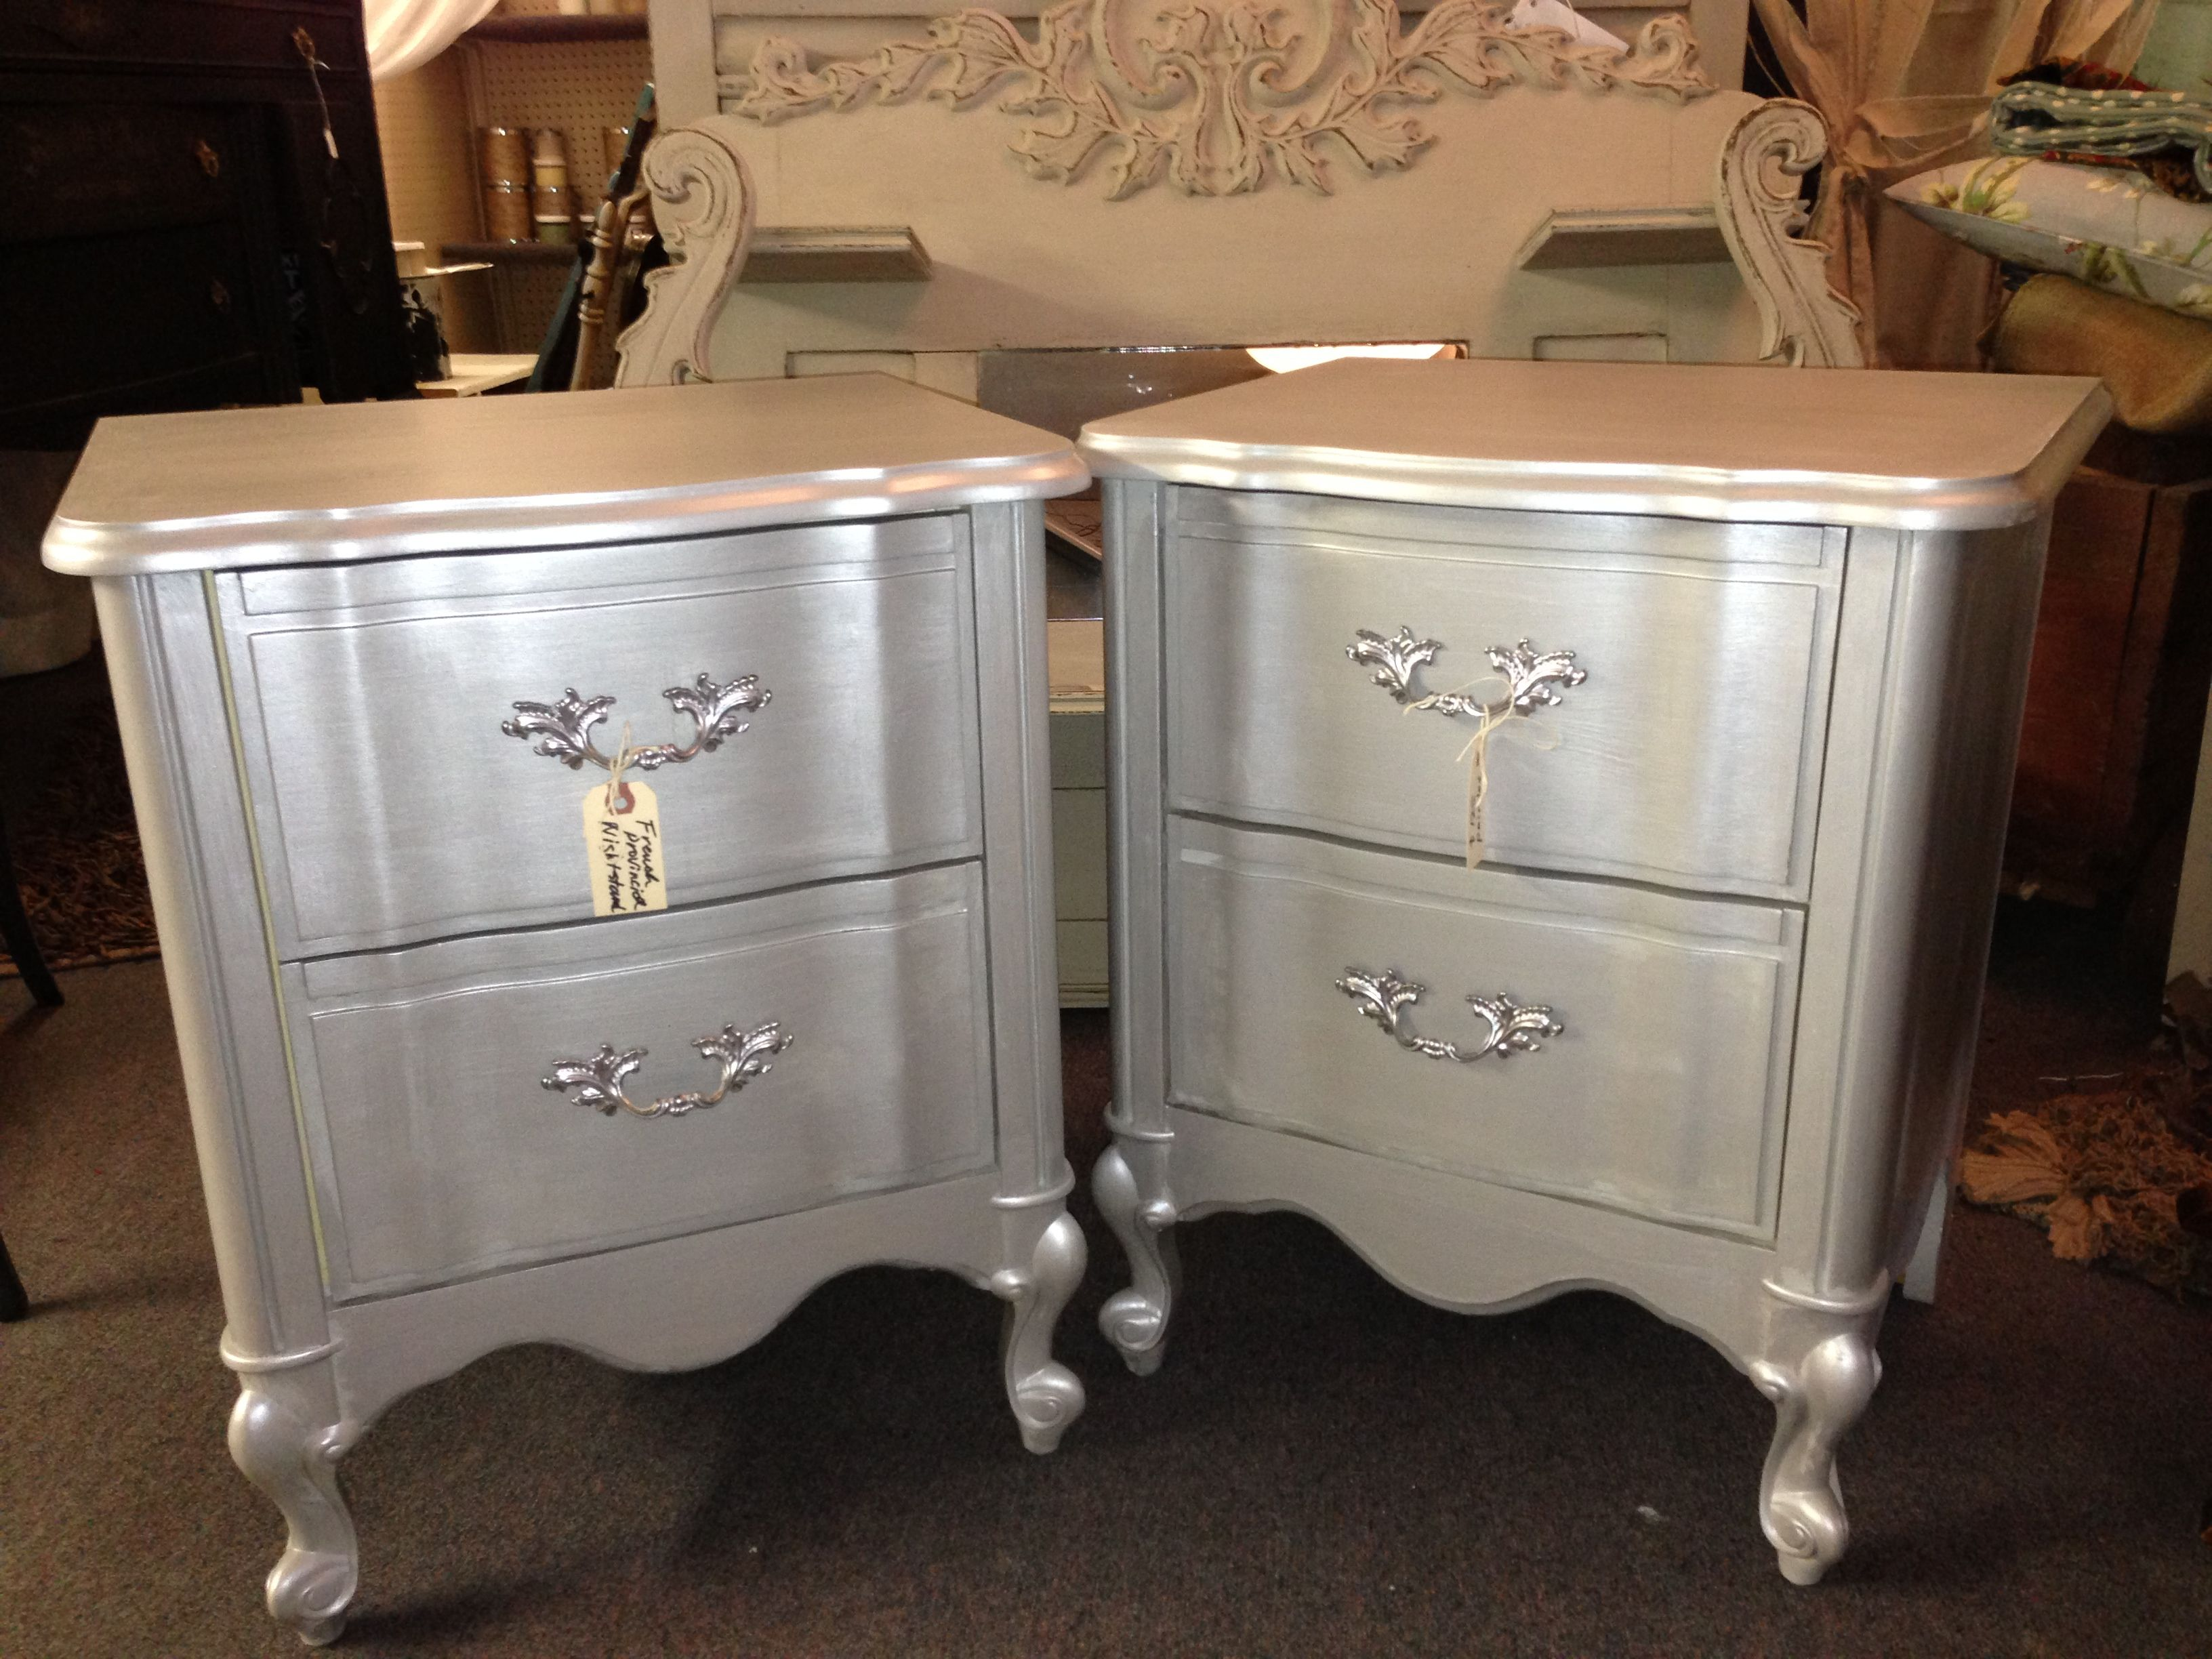 Best French Provincial Nightstand Pair In A Metallic Finish 640 x 480